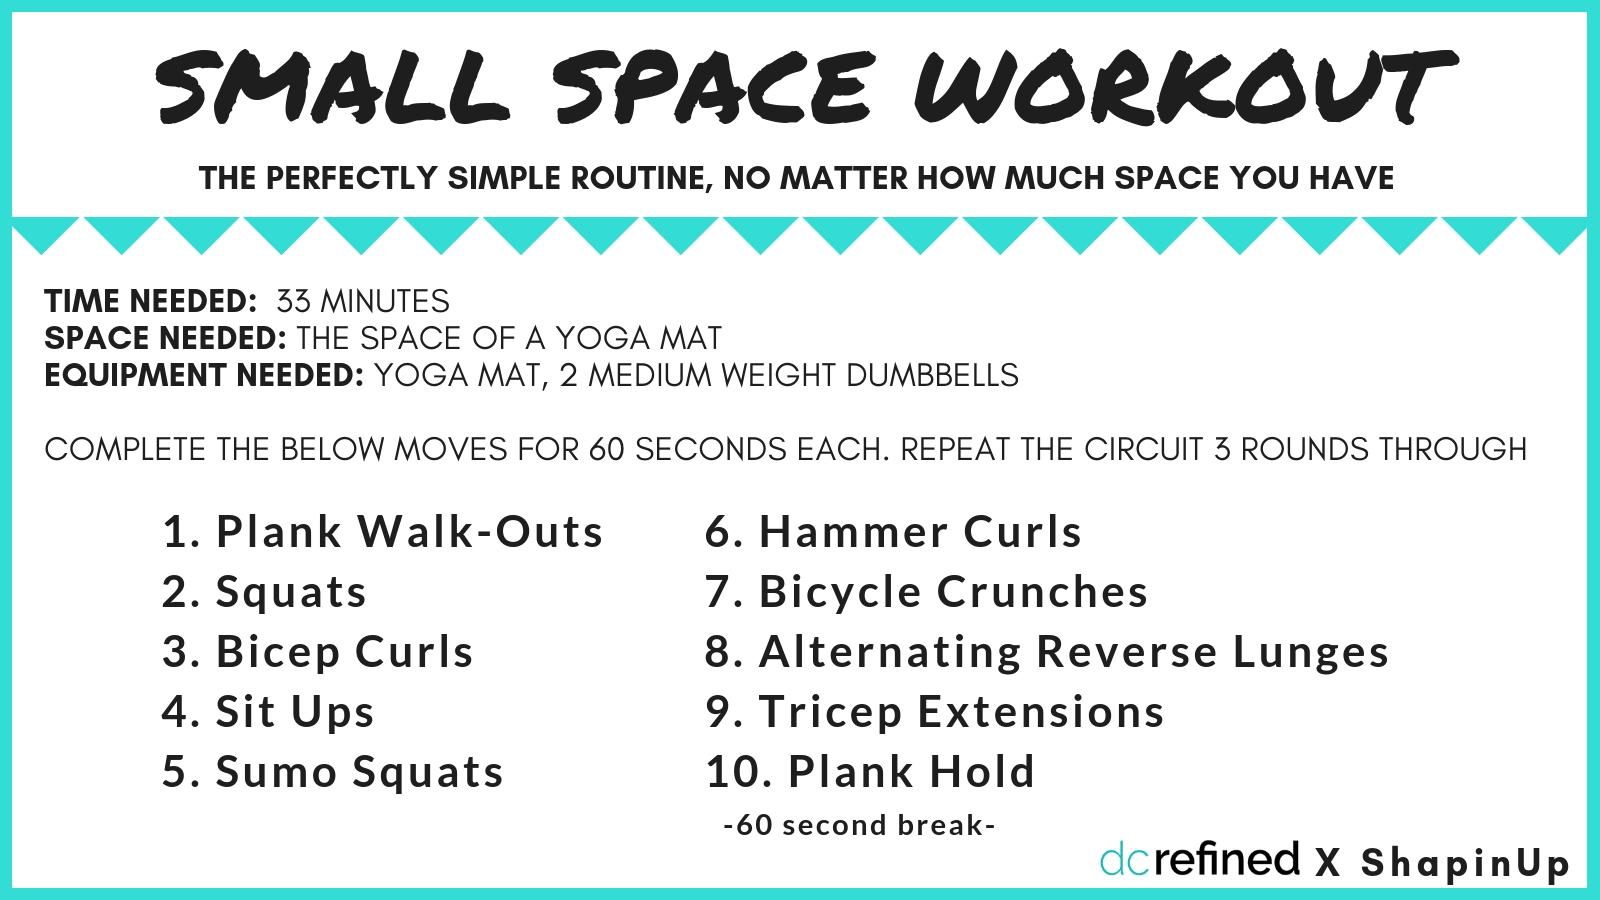 Lack of space doesn't need to be an excuse for a good workout. There are plenty of moves that require barely any space and still result in a quality sweat.{ }(Image: Amanda Shapin)